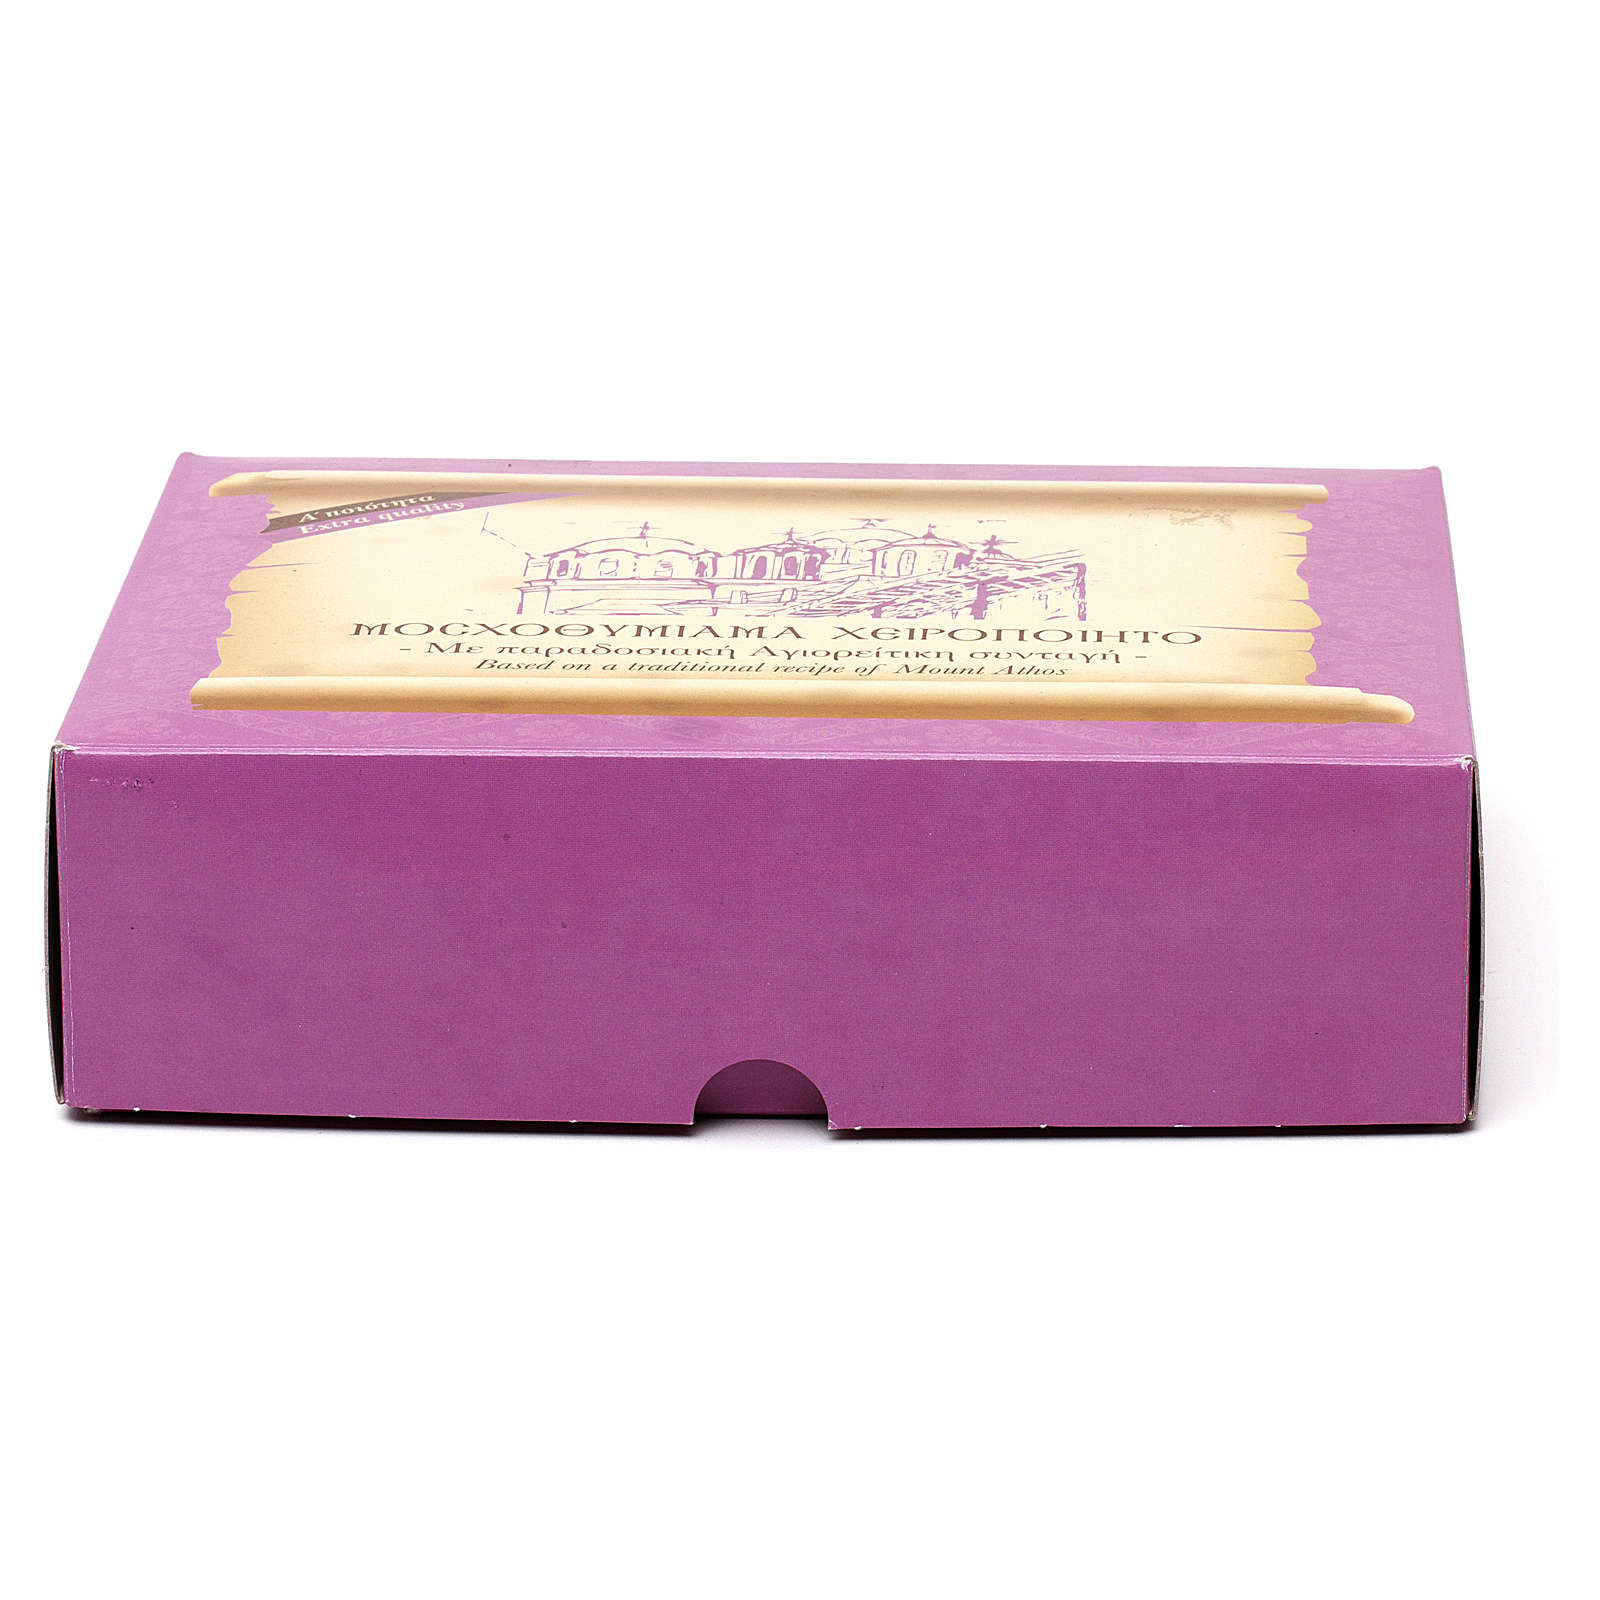 Betlemme perfumed Greek incense 1 kg 3